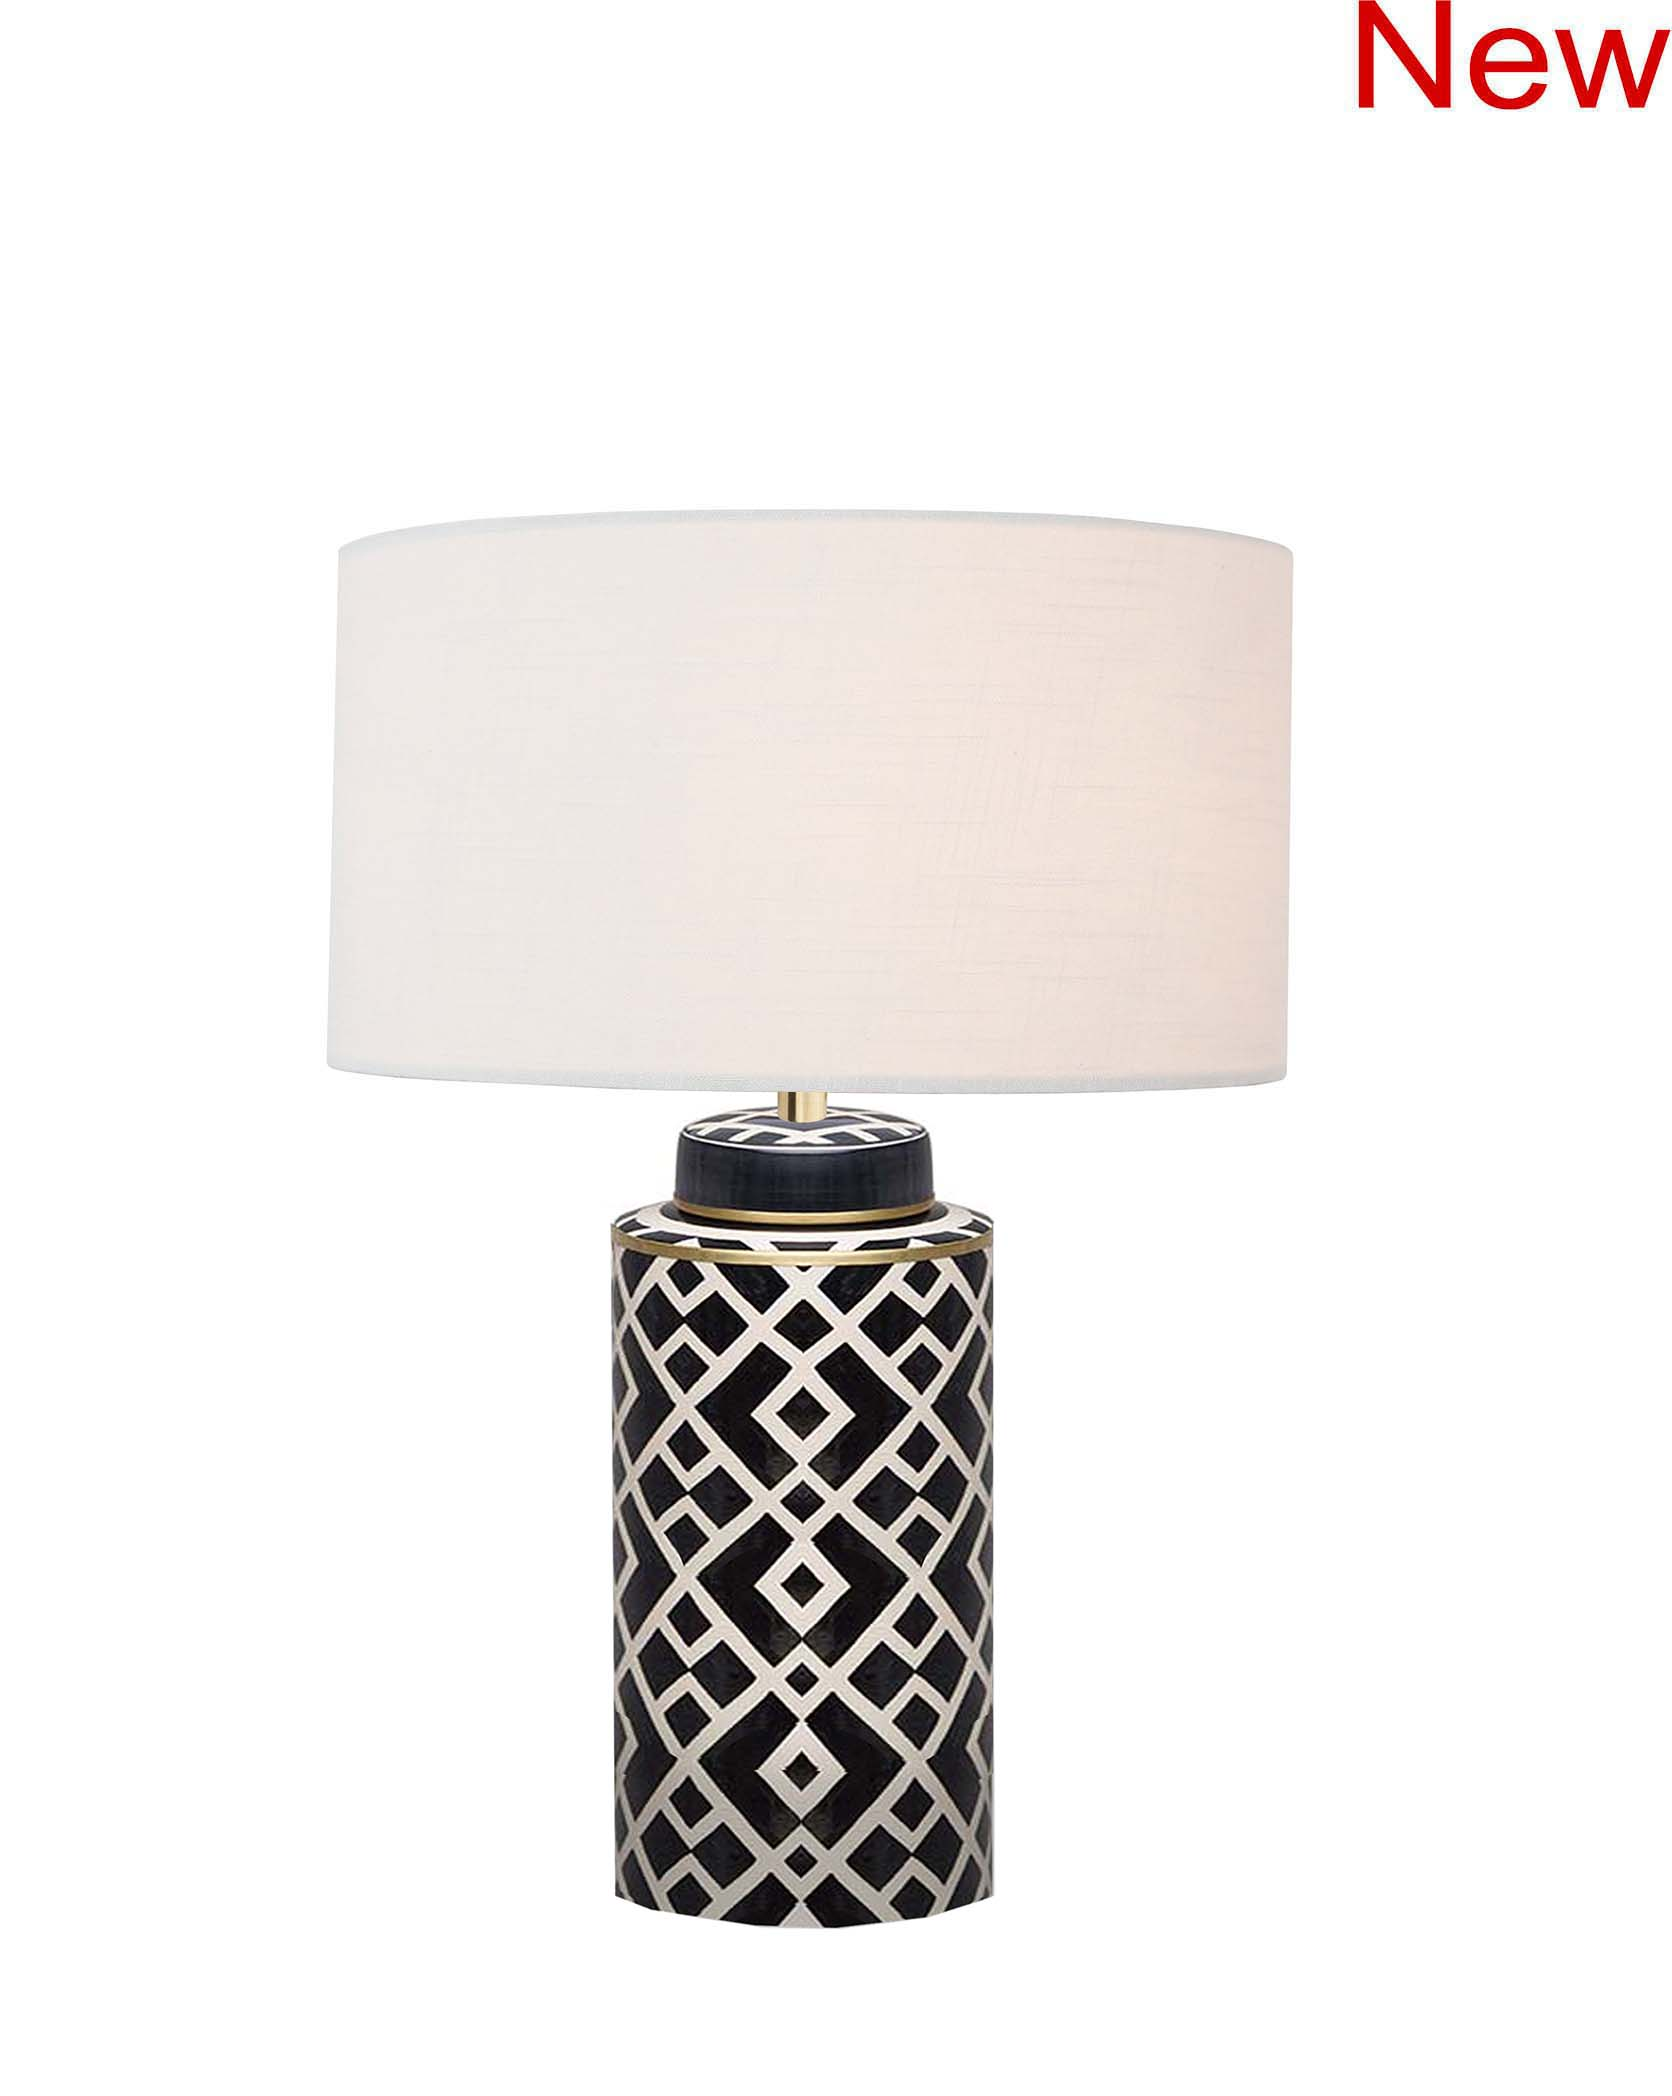 Hand Painted table lamp product photo #2